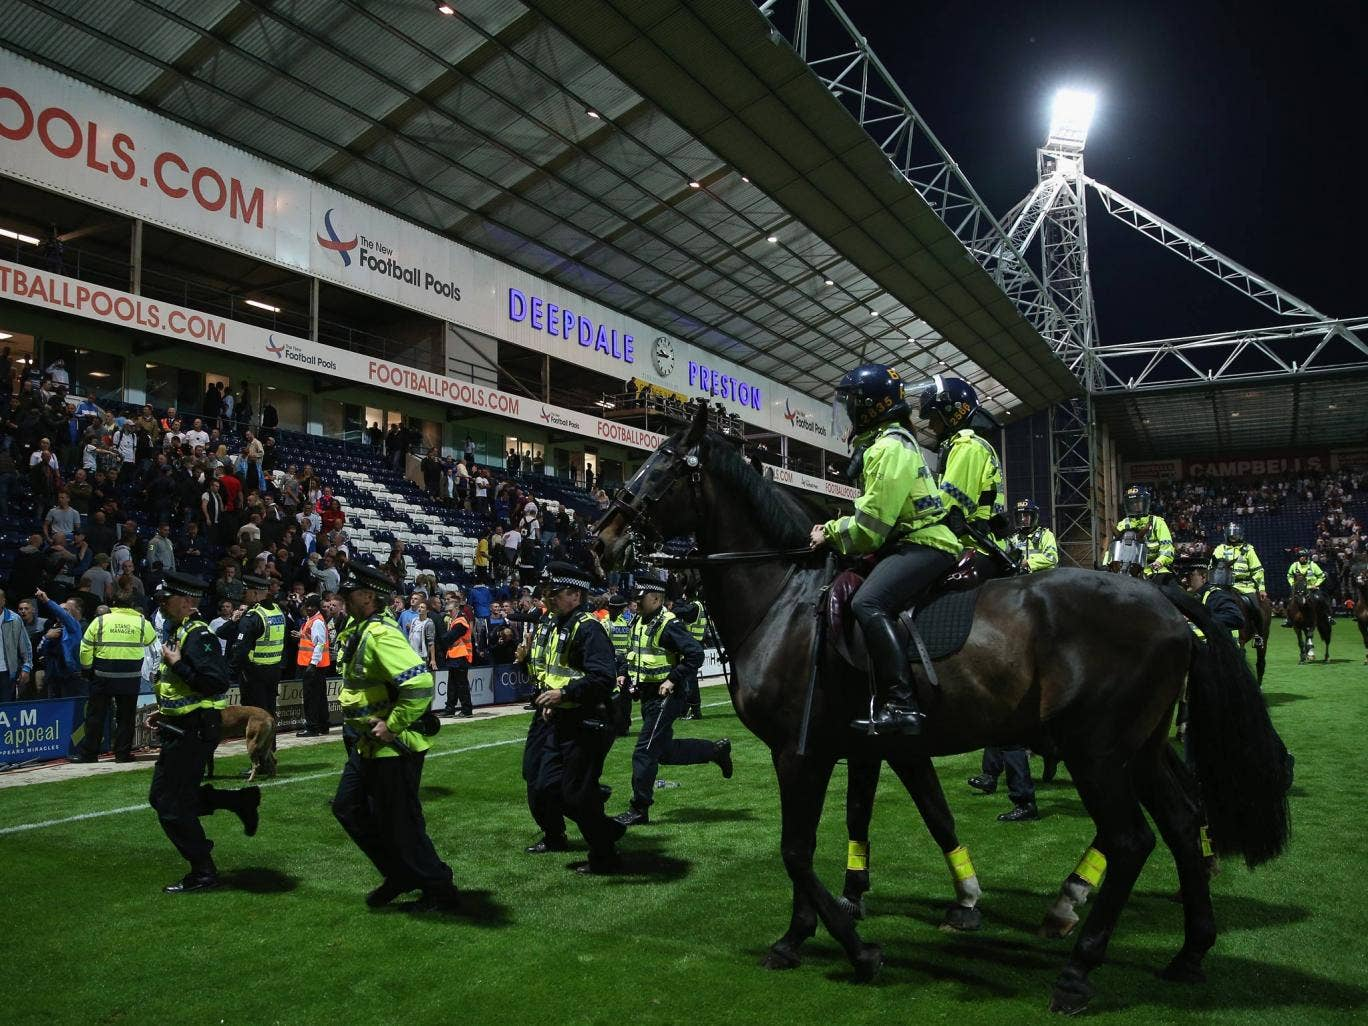 Police on foot and horse try to control the pitch invasion by fans at the final whistle of the Capital One Cup first round match between Preston North End and Blackpool